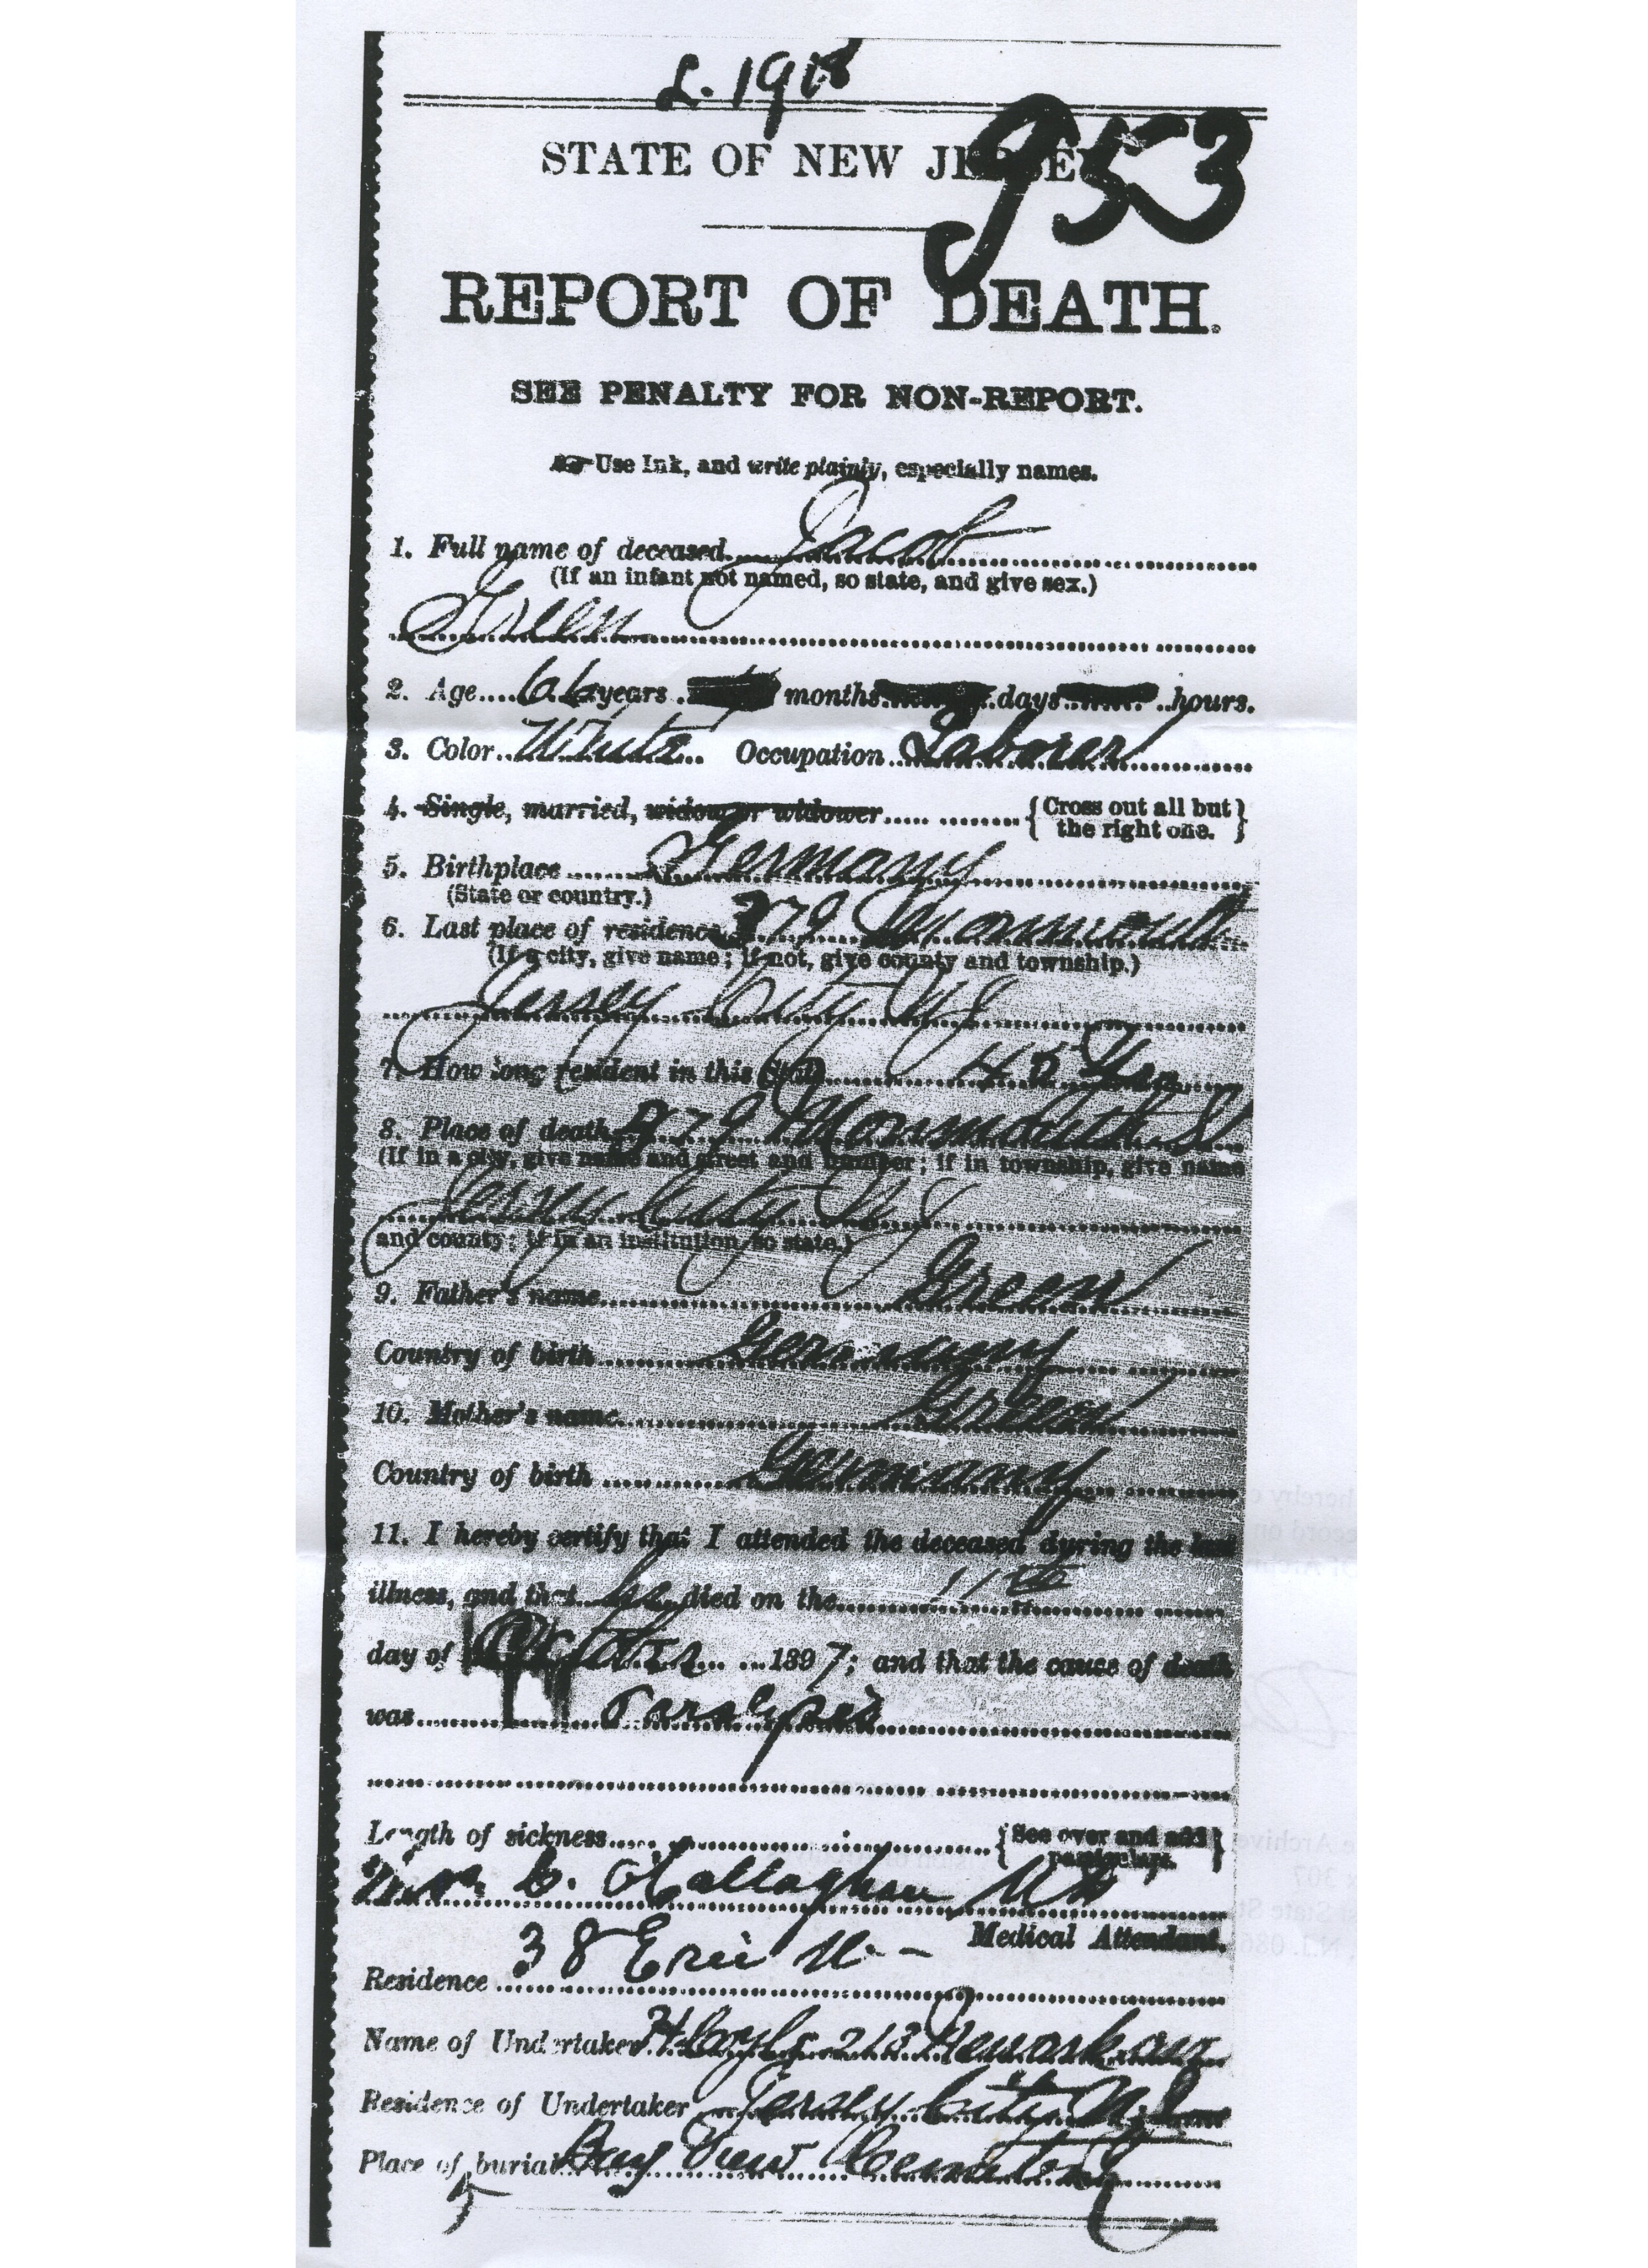 October 5 2010 Erbig And Green Death Records Wells Family Genealogy